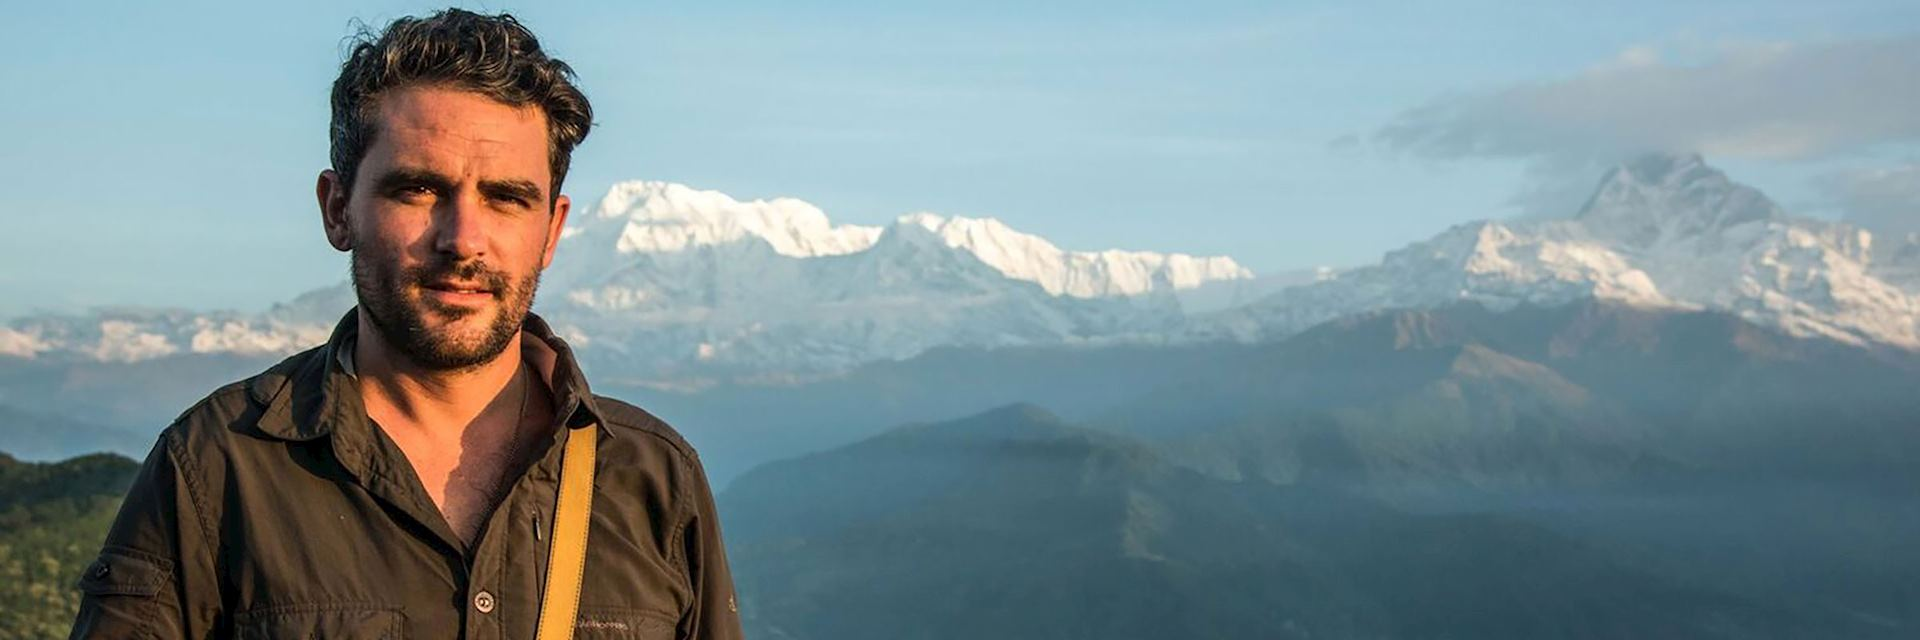 Levison Wood with a backdrop of the Himalaya